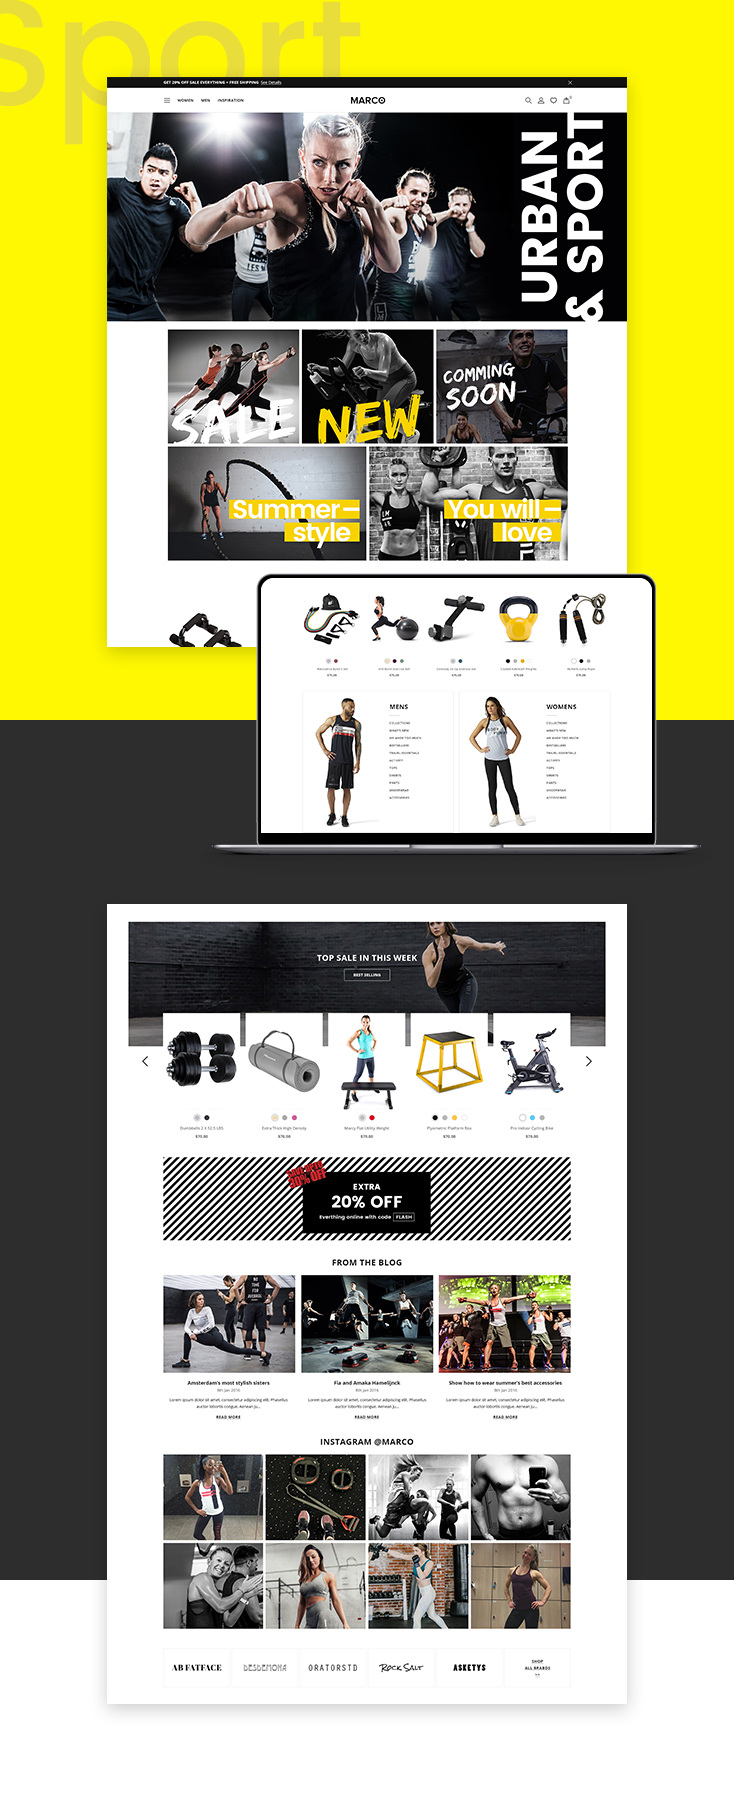 Marco Sportage Shopify theme design